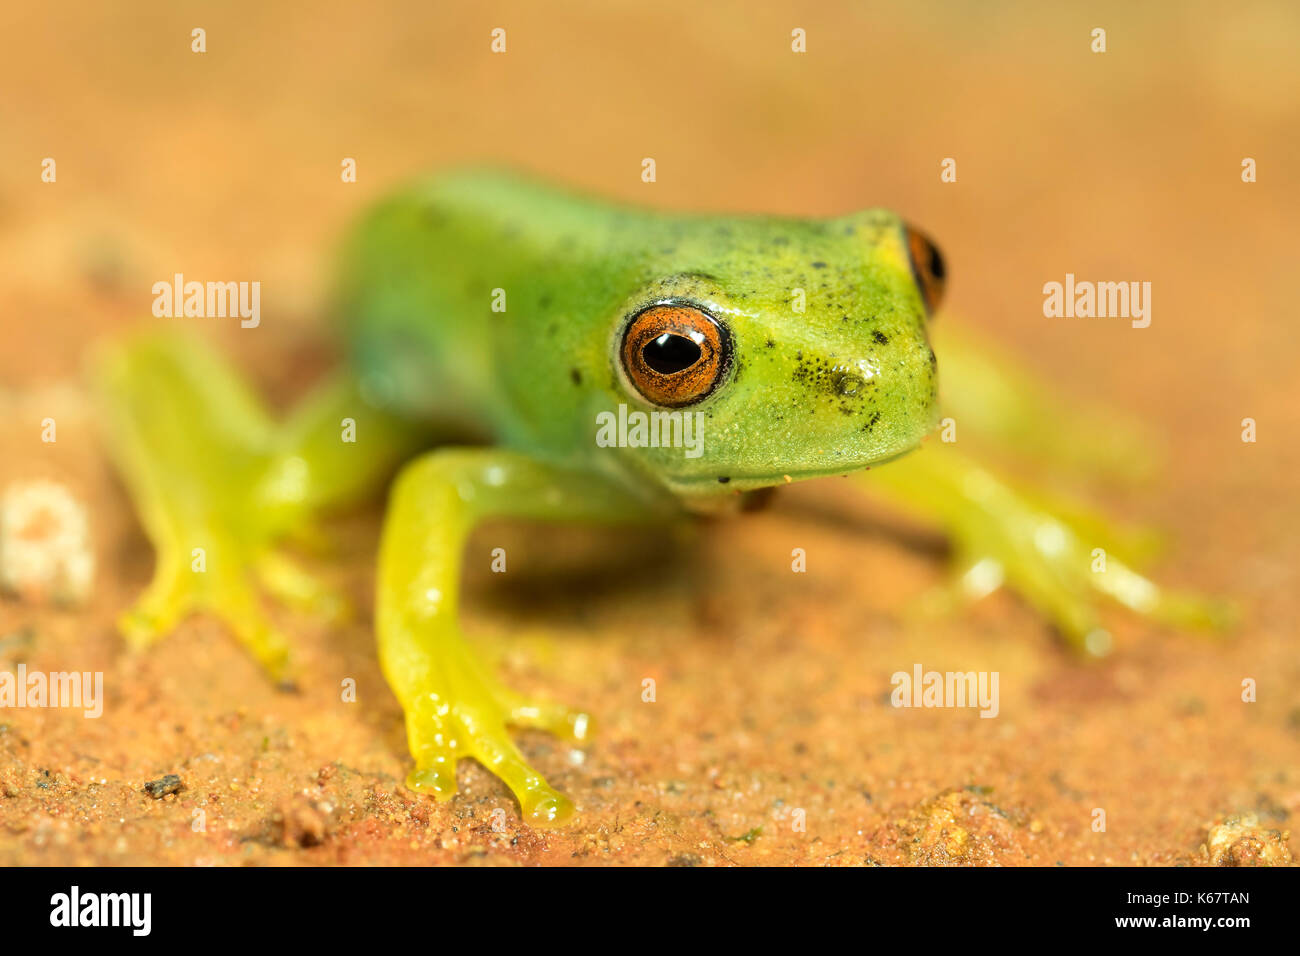 little green frog with red eyes - Stock Image